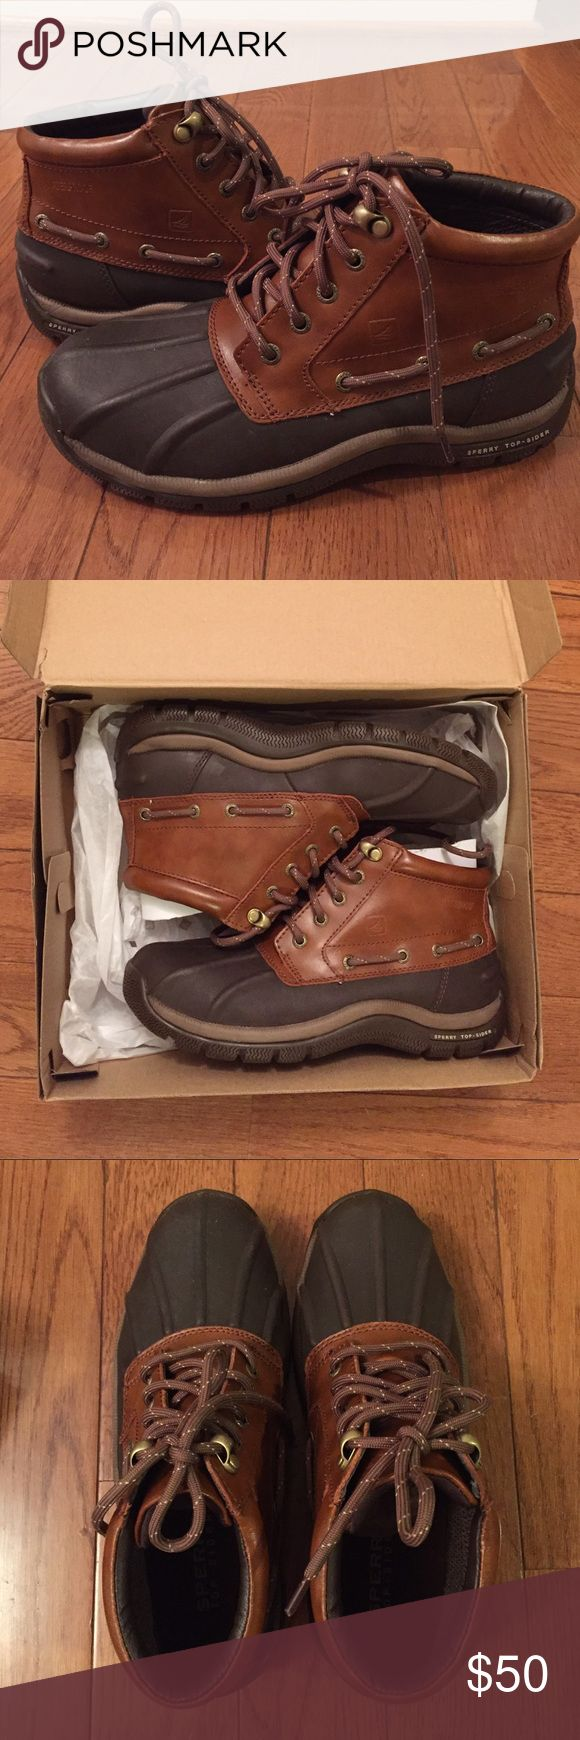 Men's Shoes Sperry Top Sider Glacier Chukka Sperry Top Sider Glacier Chukka in Tan/Brown Men's shoes. rubber outsole with wave-siping provide on the road/off-road wet/dry traction. Sperry Top-Sider Shoes Winter & Rain Boots